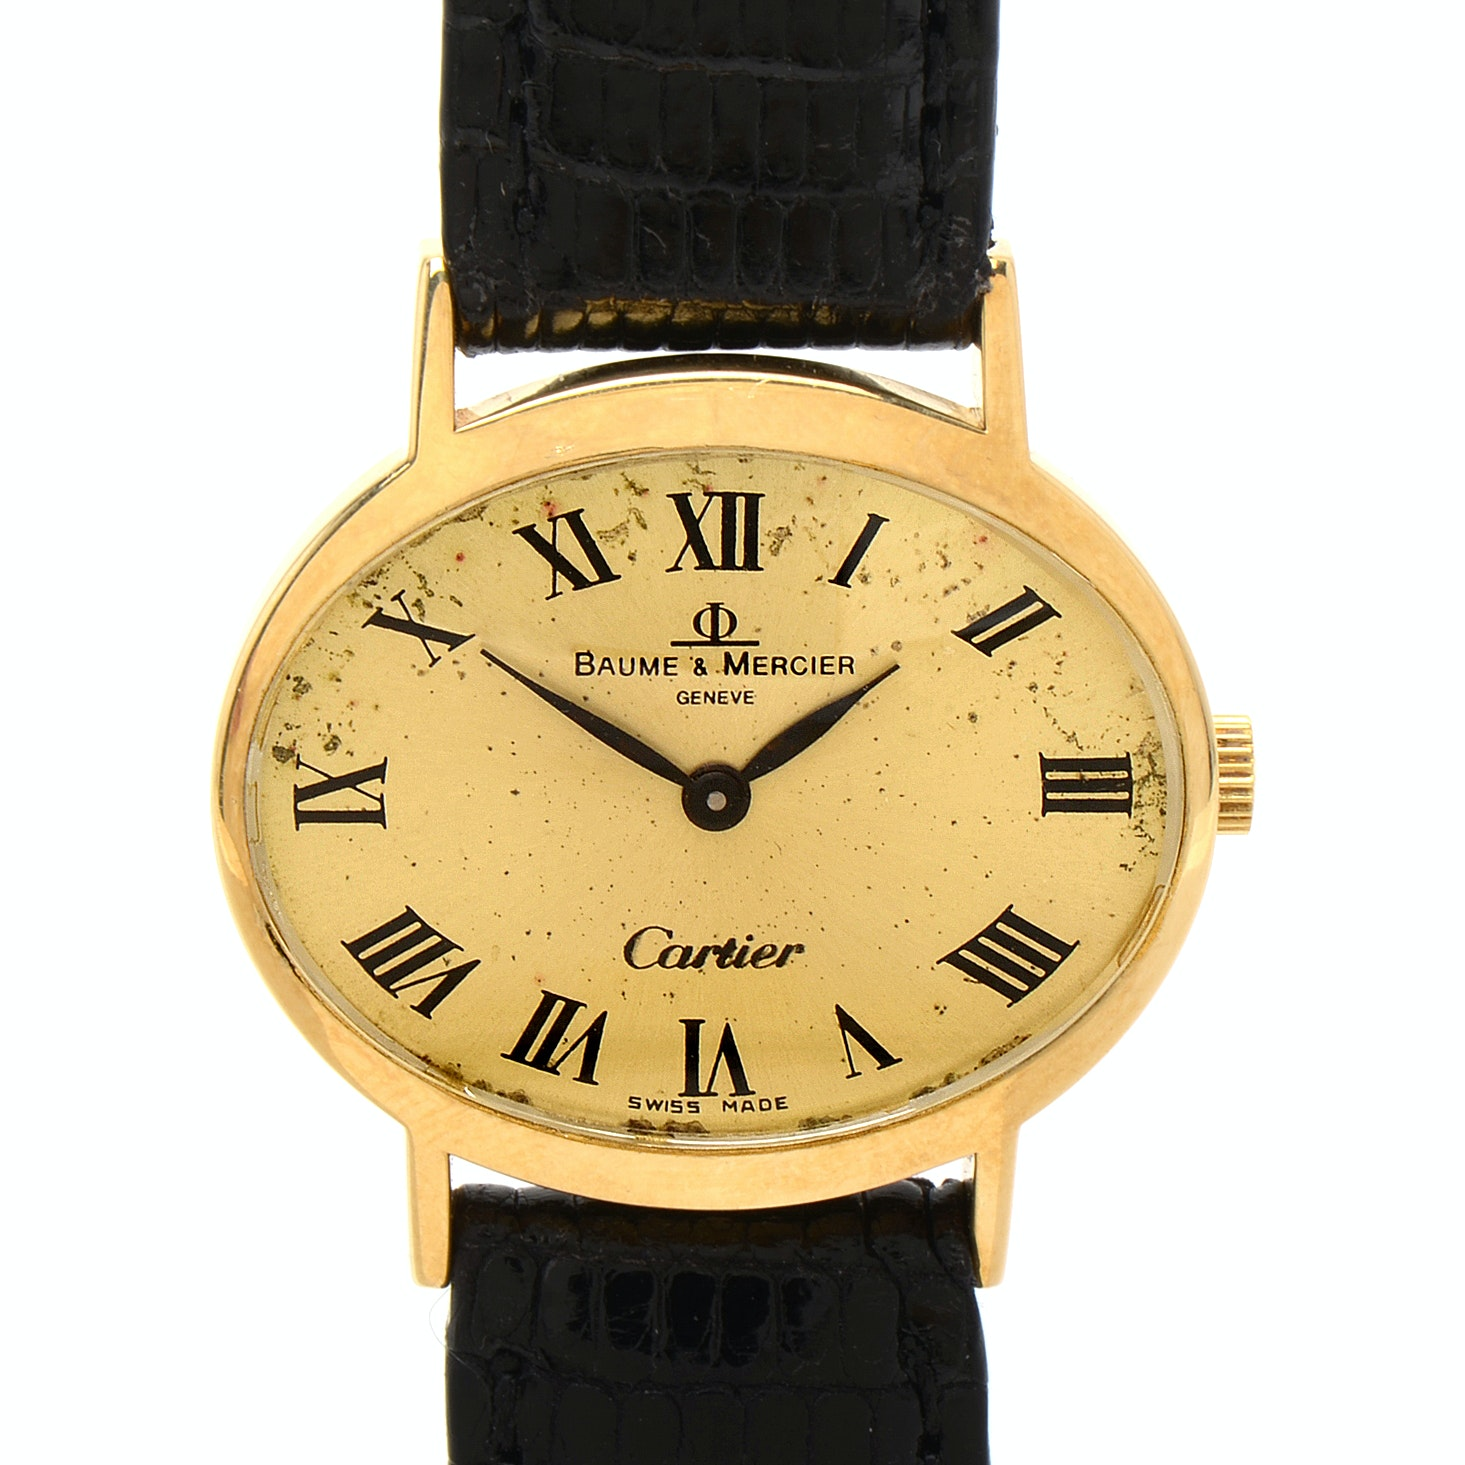 Baume & Mercier for Cartier 18K Gold Manual Wind Wristwatch